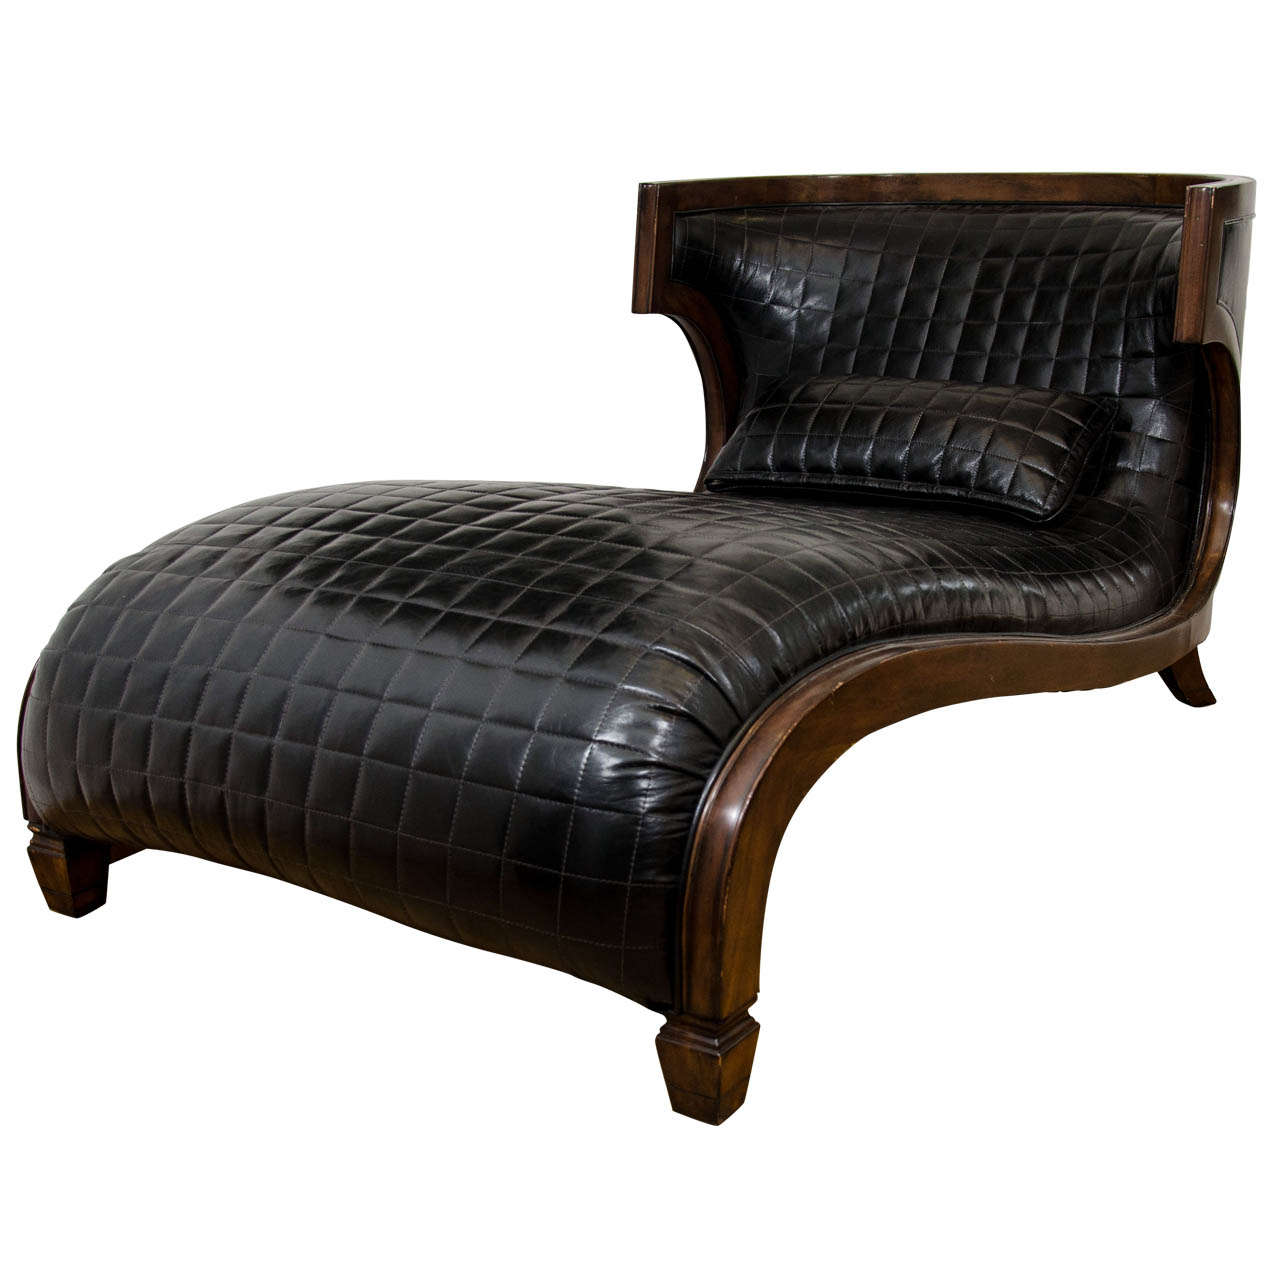 A vintage curvaceous black leather wide chaise longue at 1stdibs - Antique chaise longue ...